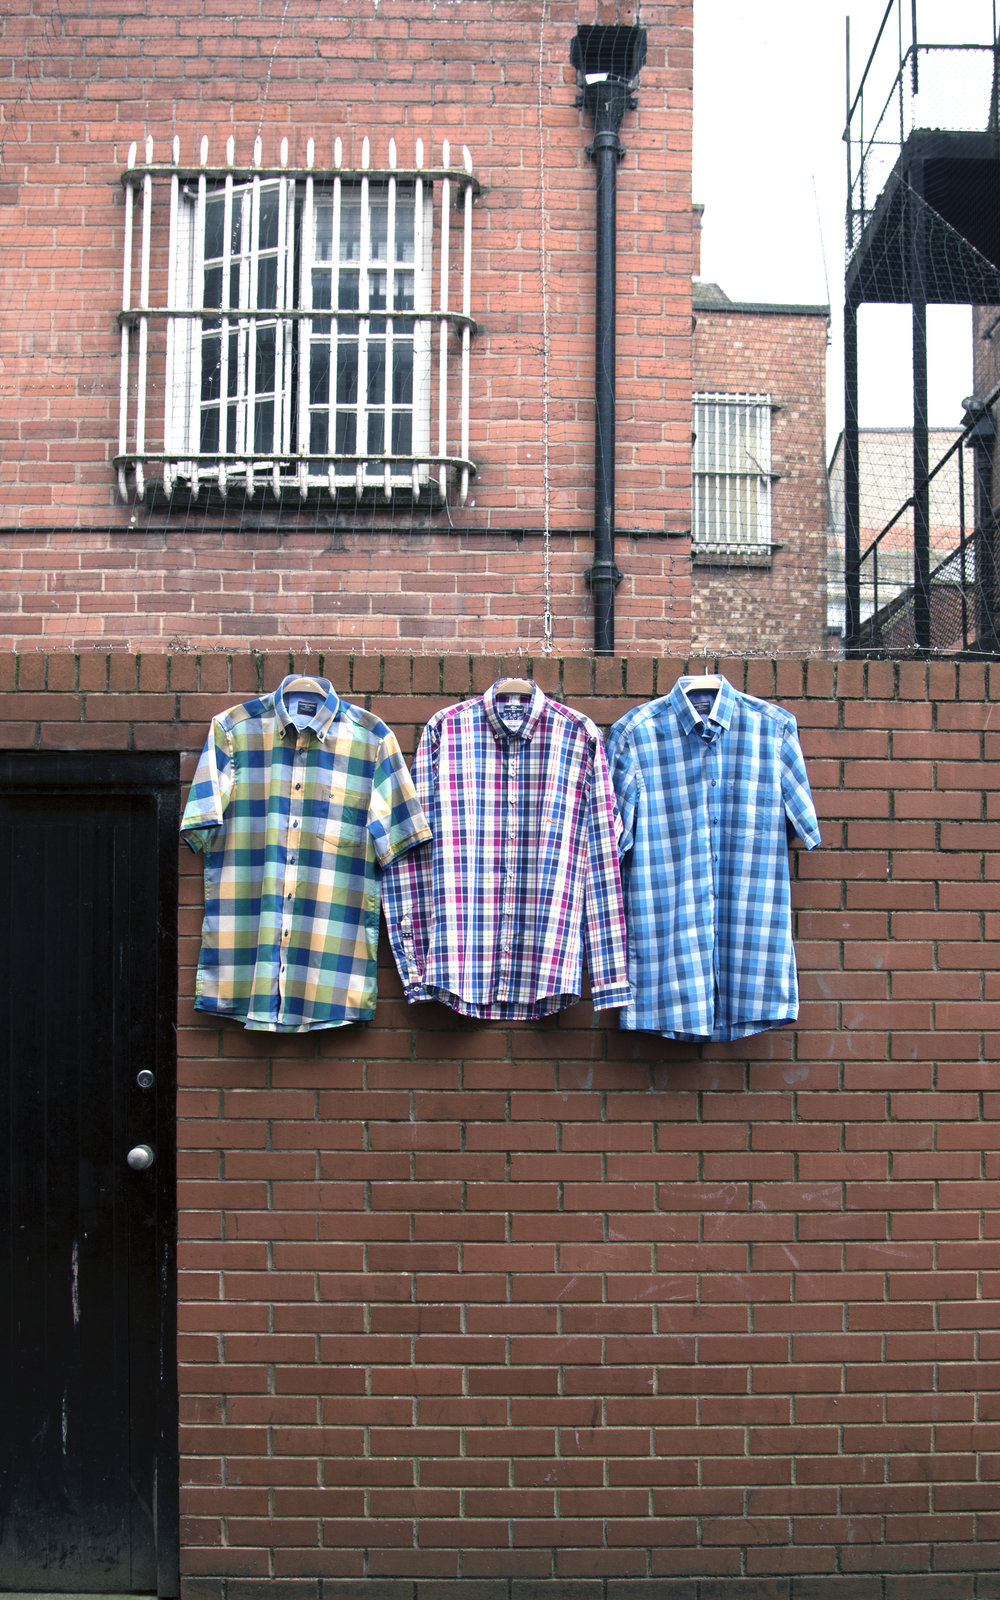 Row of short sleeved check shirts hanging on wall in Hereford.jpg